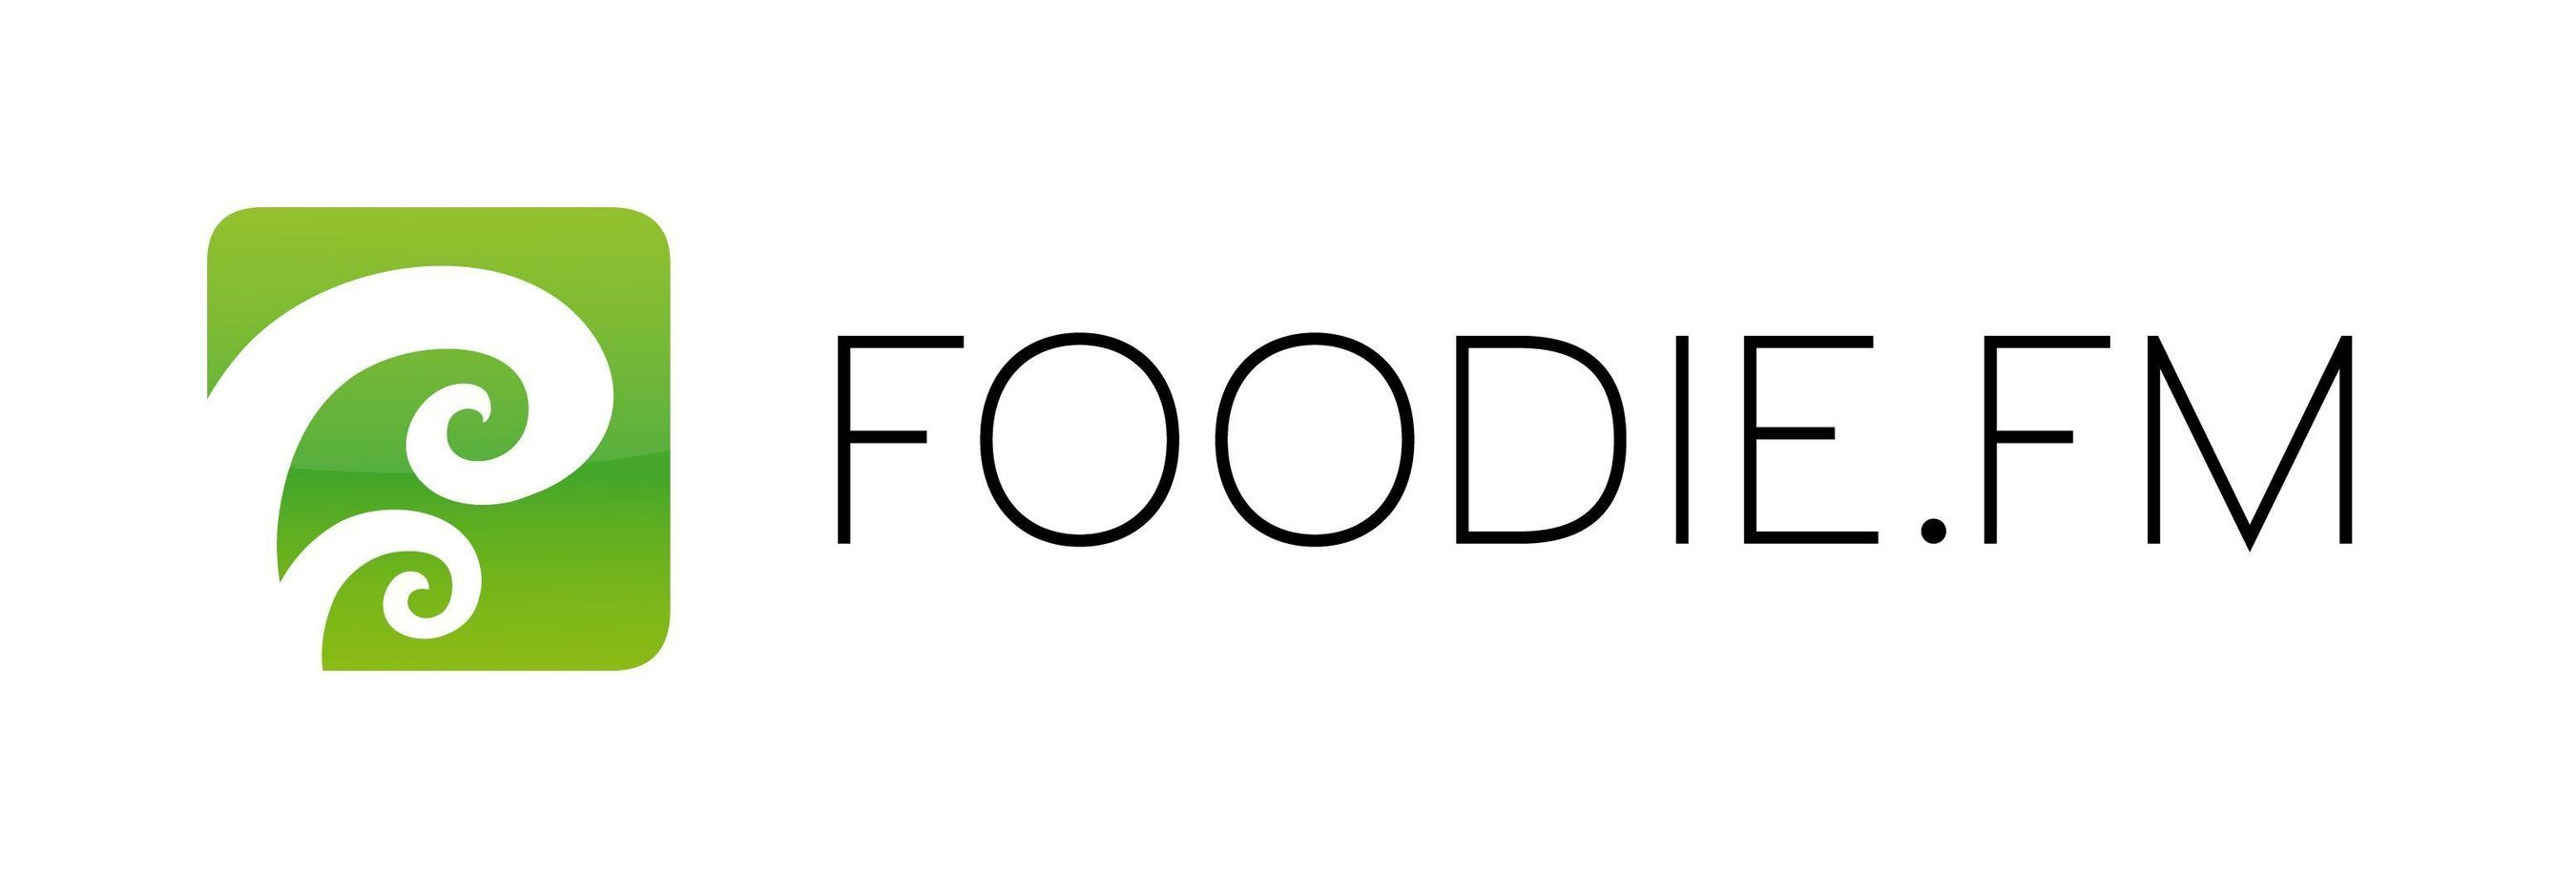 Digital Foodie and GS1 Finland Sign a Partnering Agreement to Launch a Data Verification Service